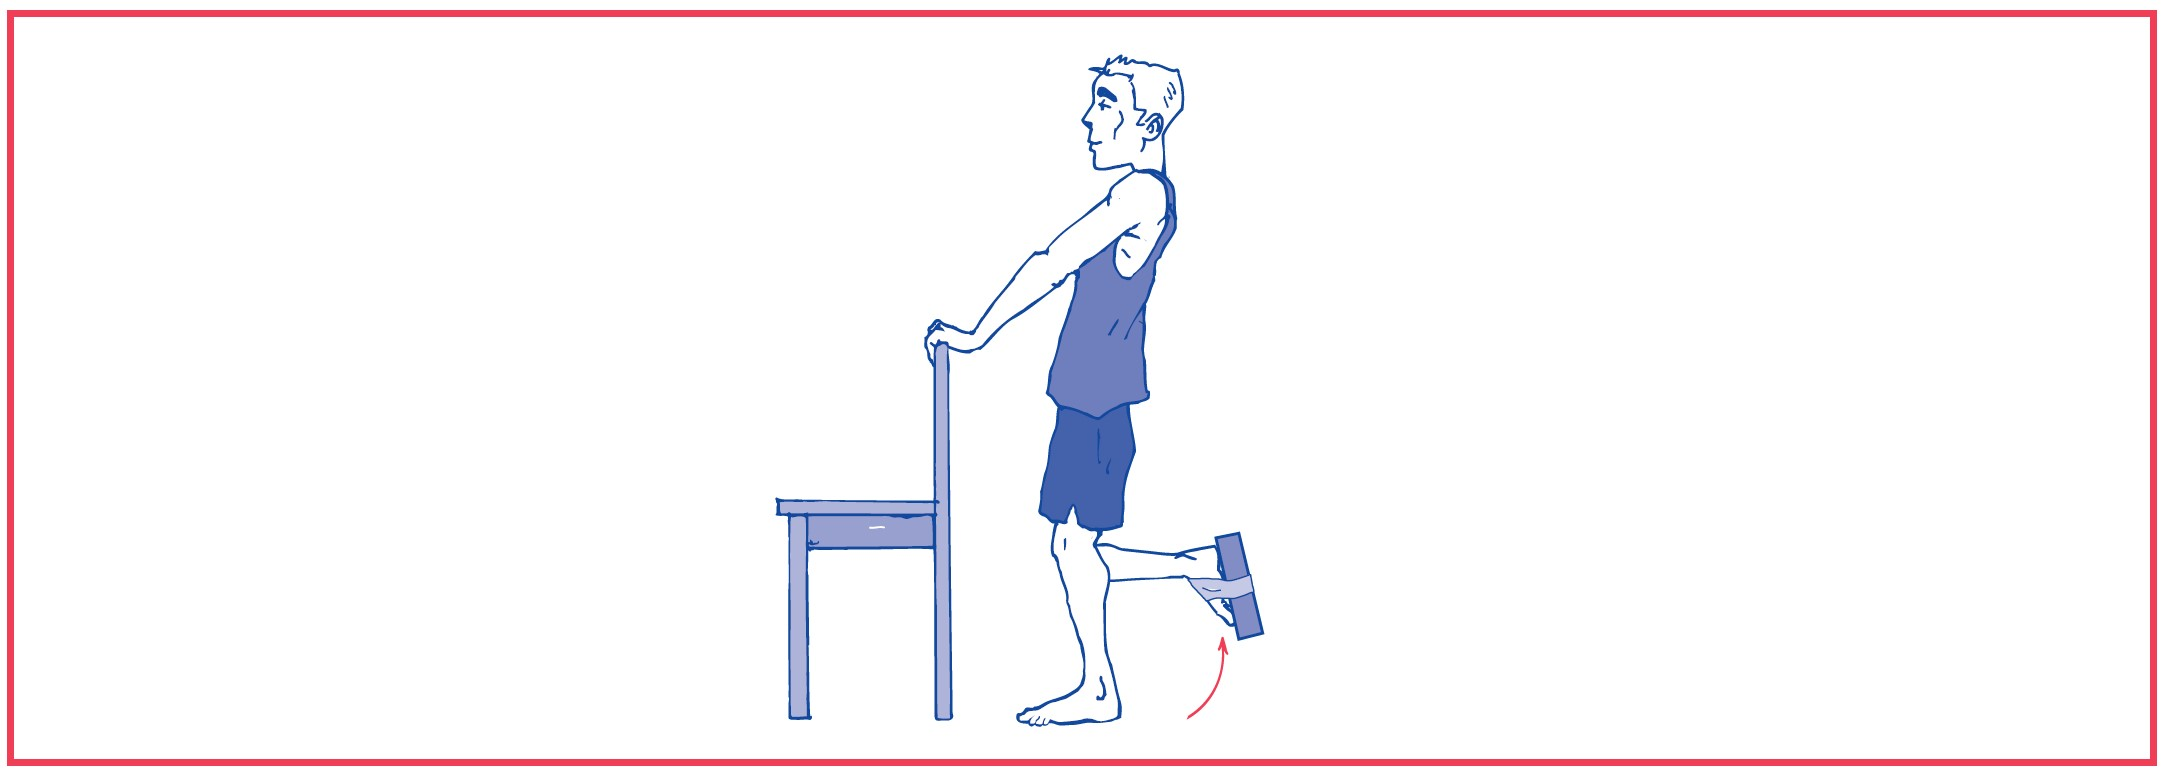 3. Knee flexion against resistance (weights)